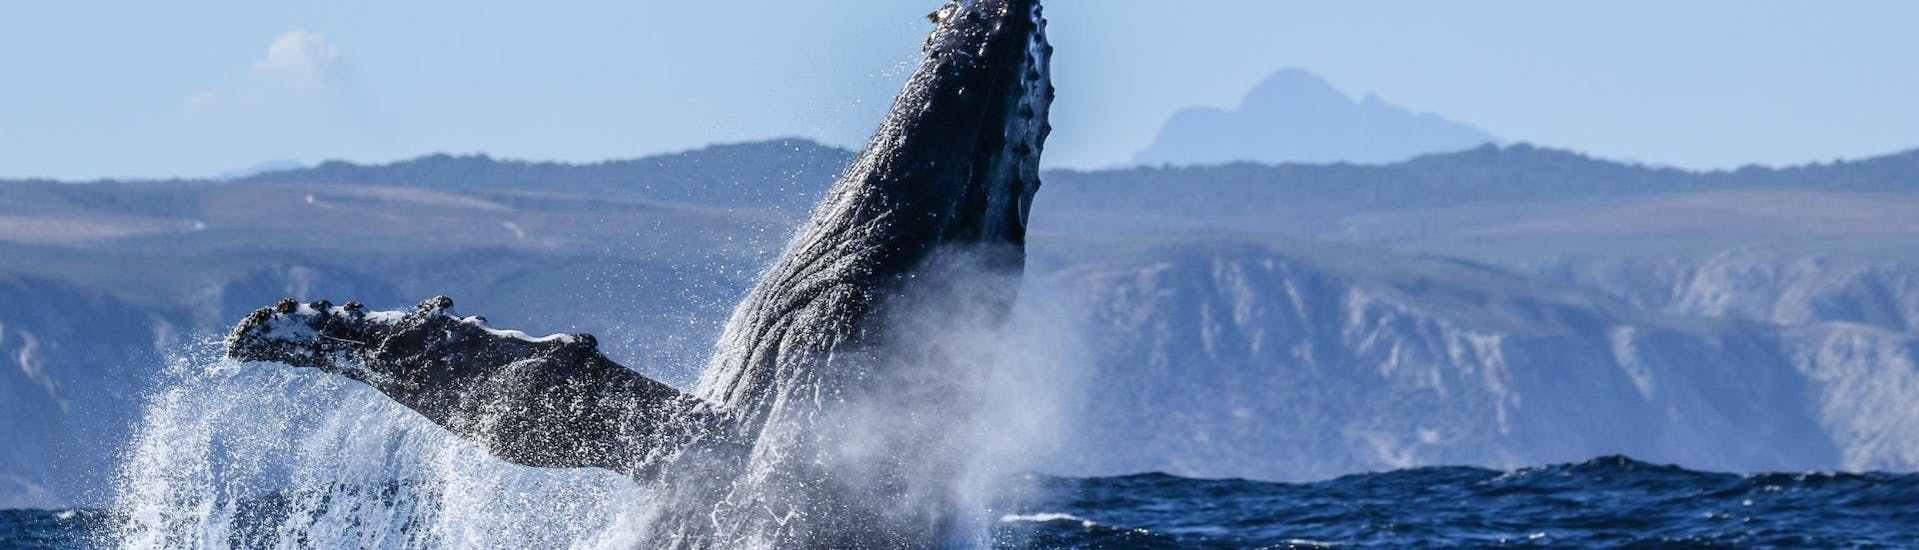 During the Whale Watching from Knysna organised by Ocean Odyssey Garden Route, tourists are watching the incredible acrobatics of a humpback whale.